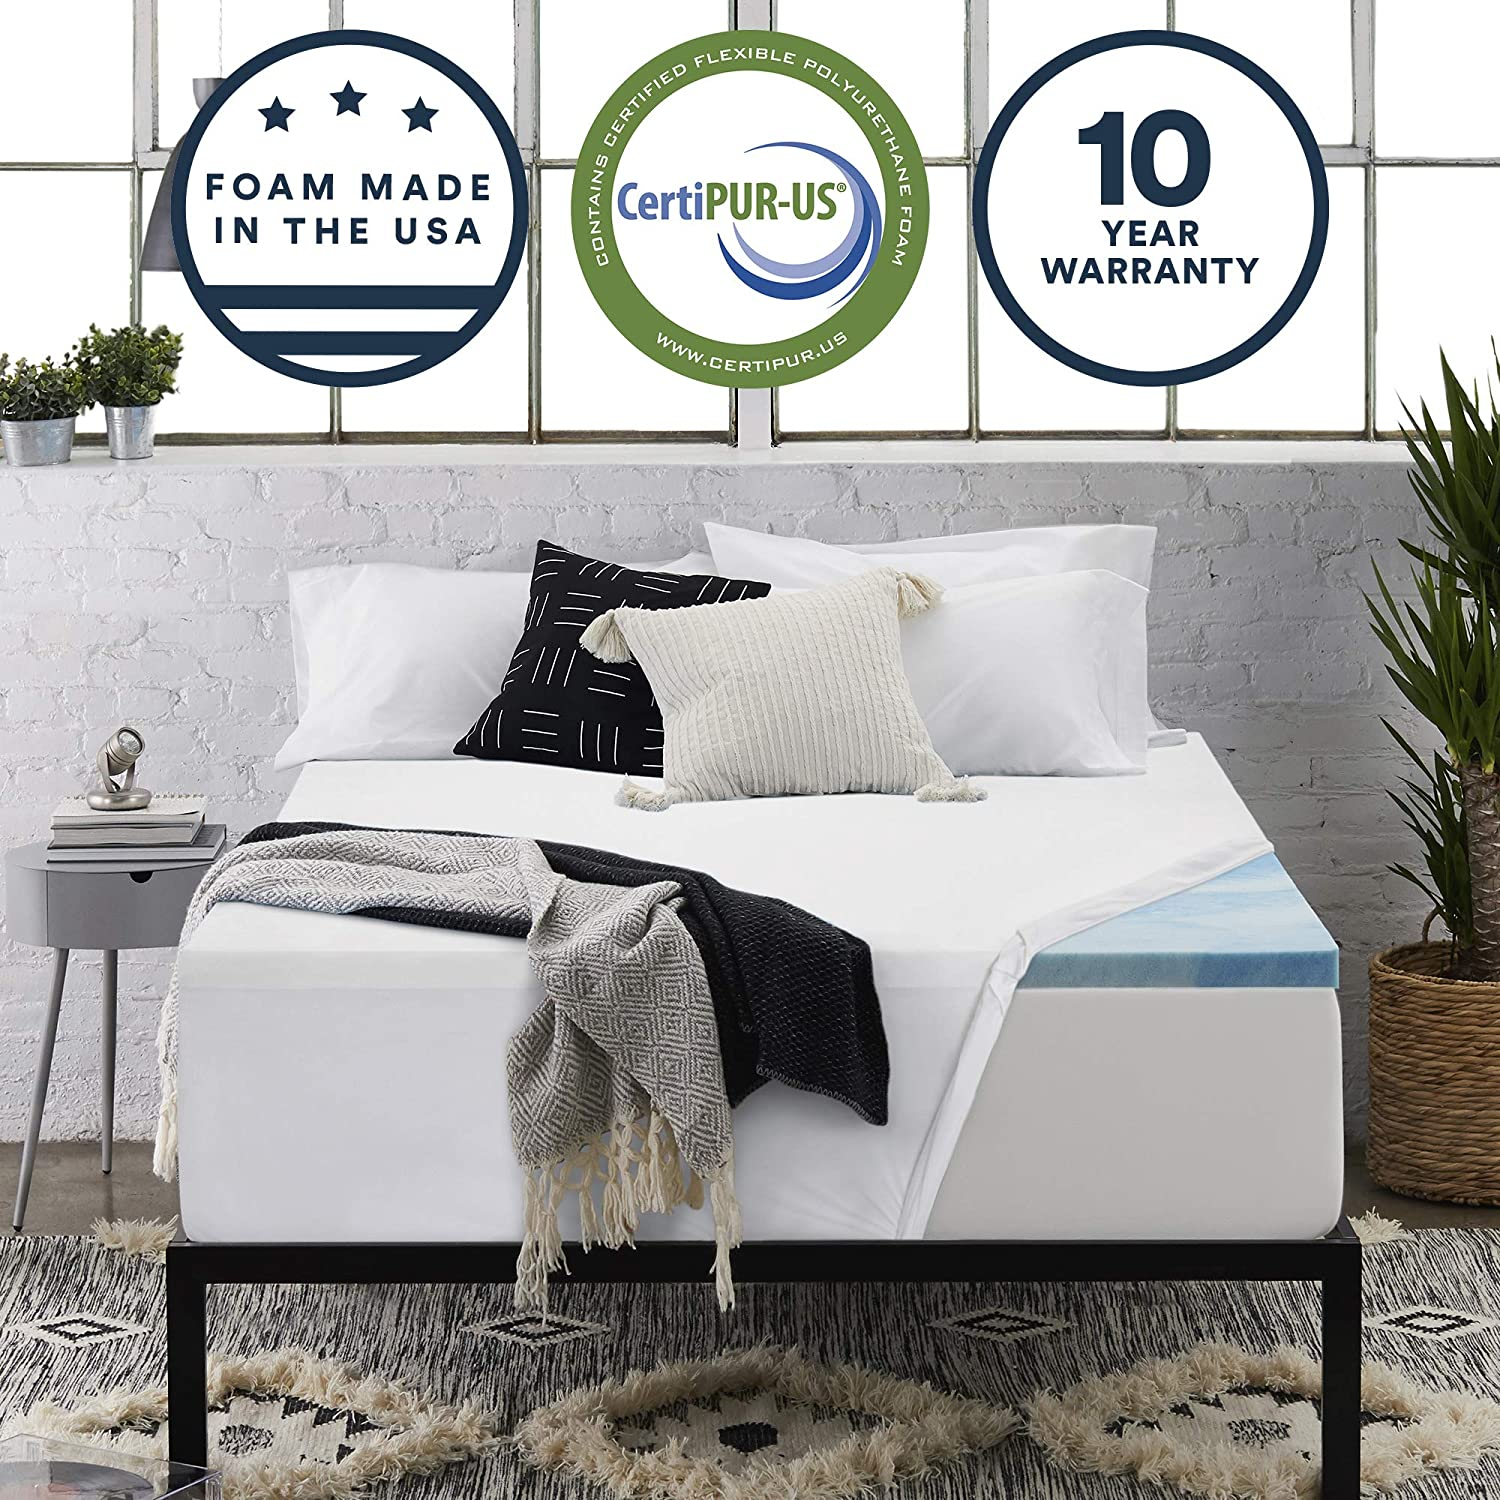 Sleep Innovations 2.5-inch Gel Memory Foam Mattress Topper with 100 Cotton Cover Queen, Made in The USA with a 10-Year Warranty